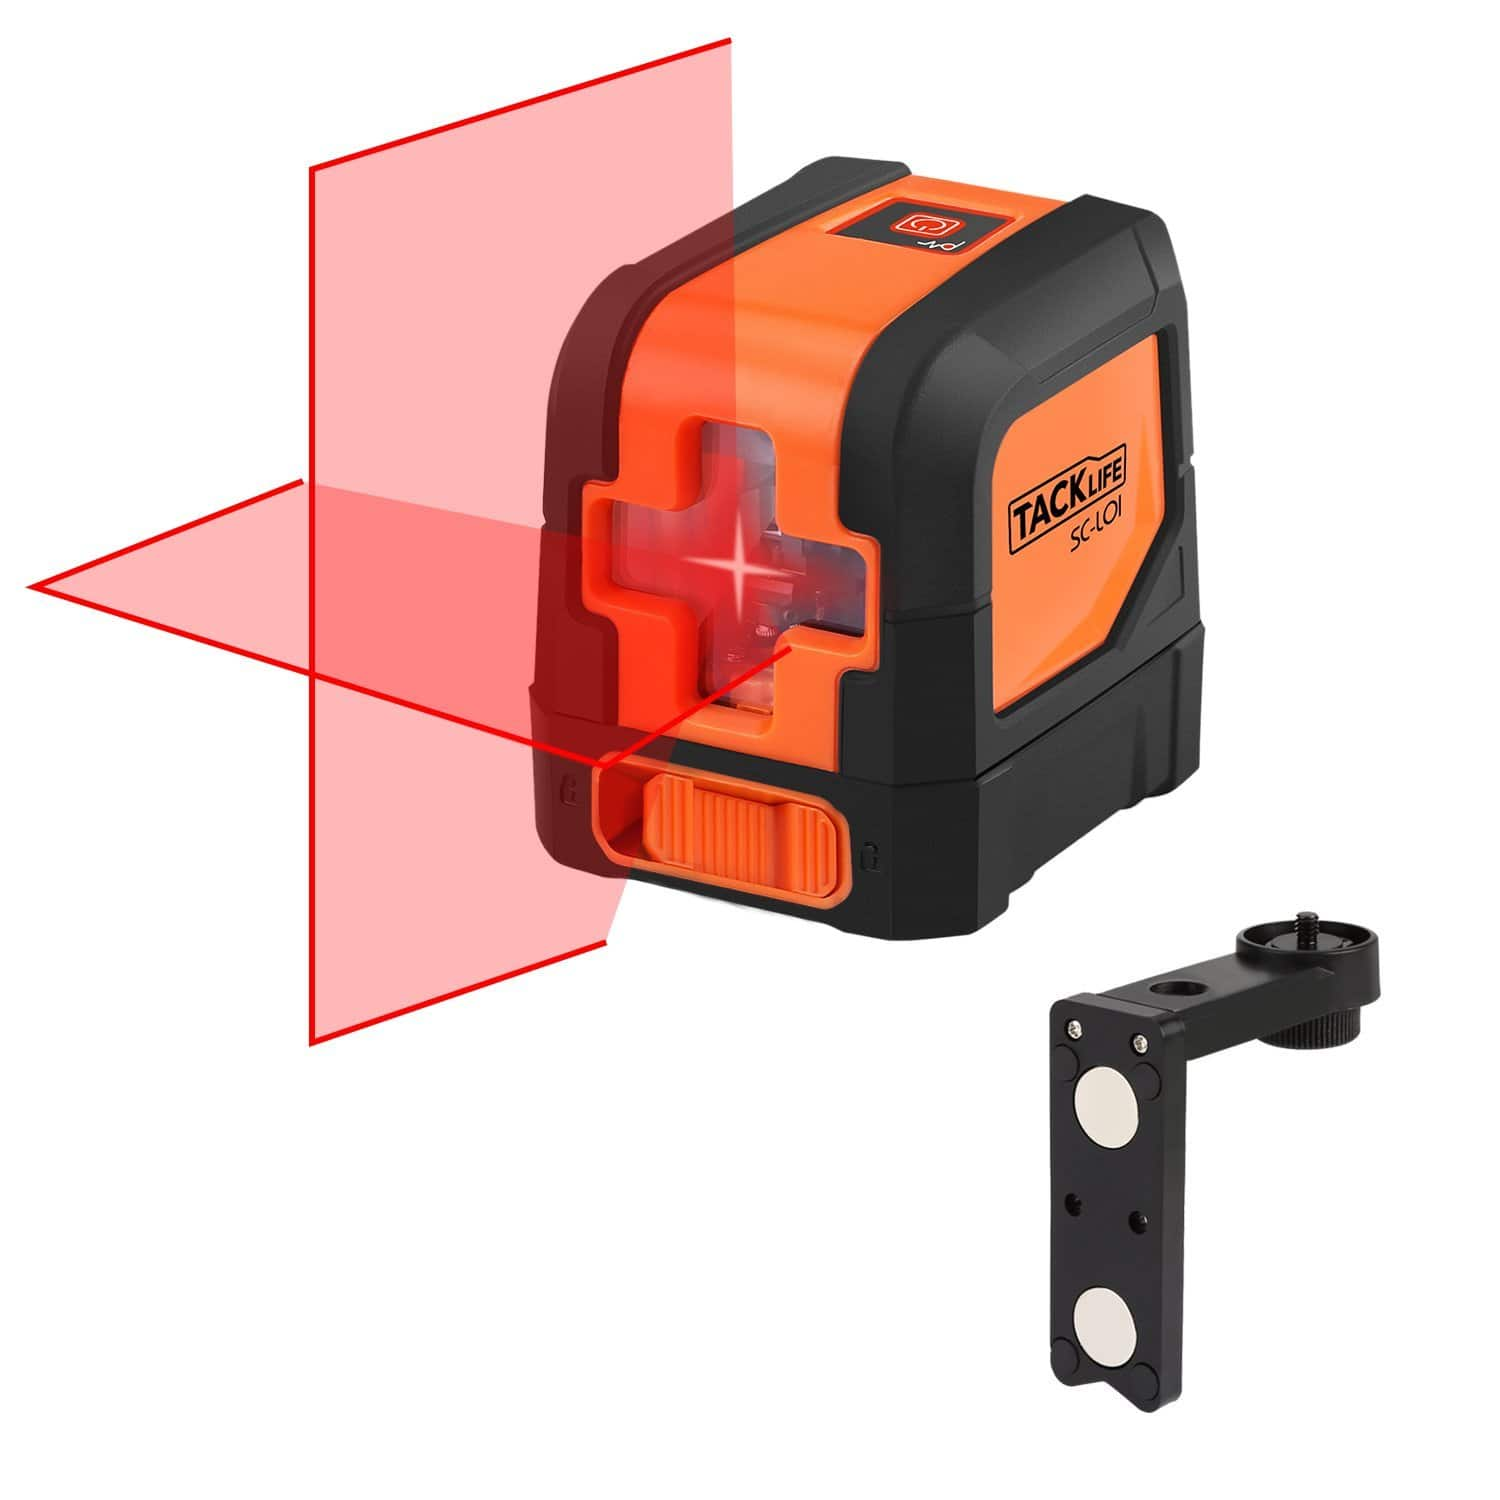 Tacklife SC-L01 - 50 Feet Laser Level Line Laser - $26.97 @ Amazon.com w/ clipped coupon